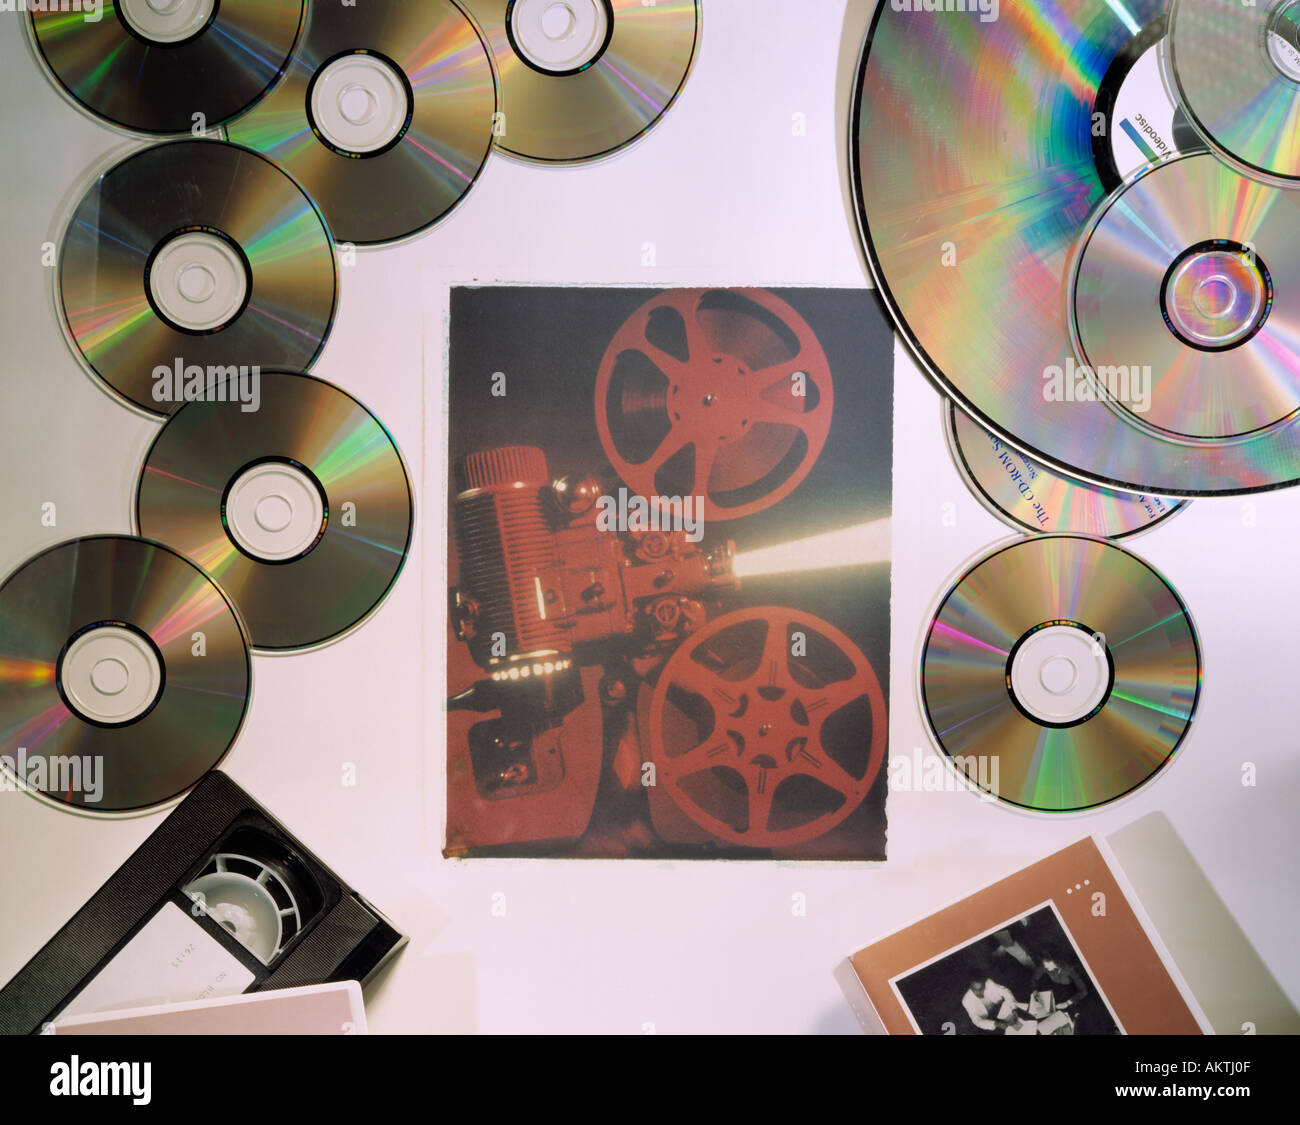 computer digital cd cd s videotape polaroid transfer image of 16mm movie motion picture projector - Stock Image